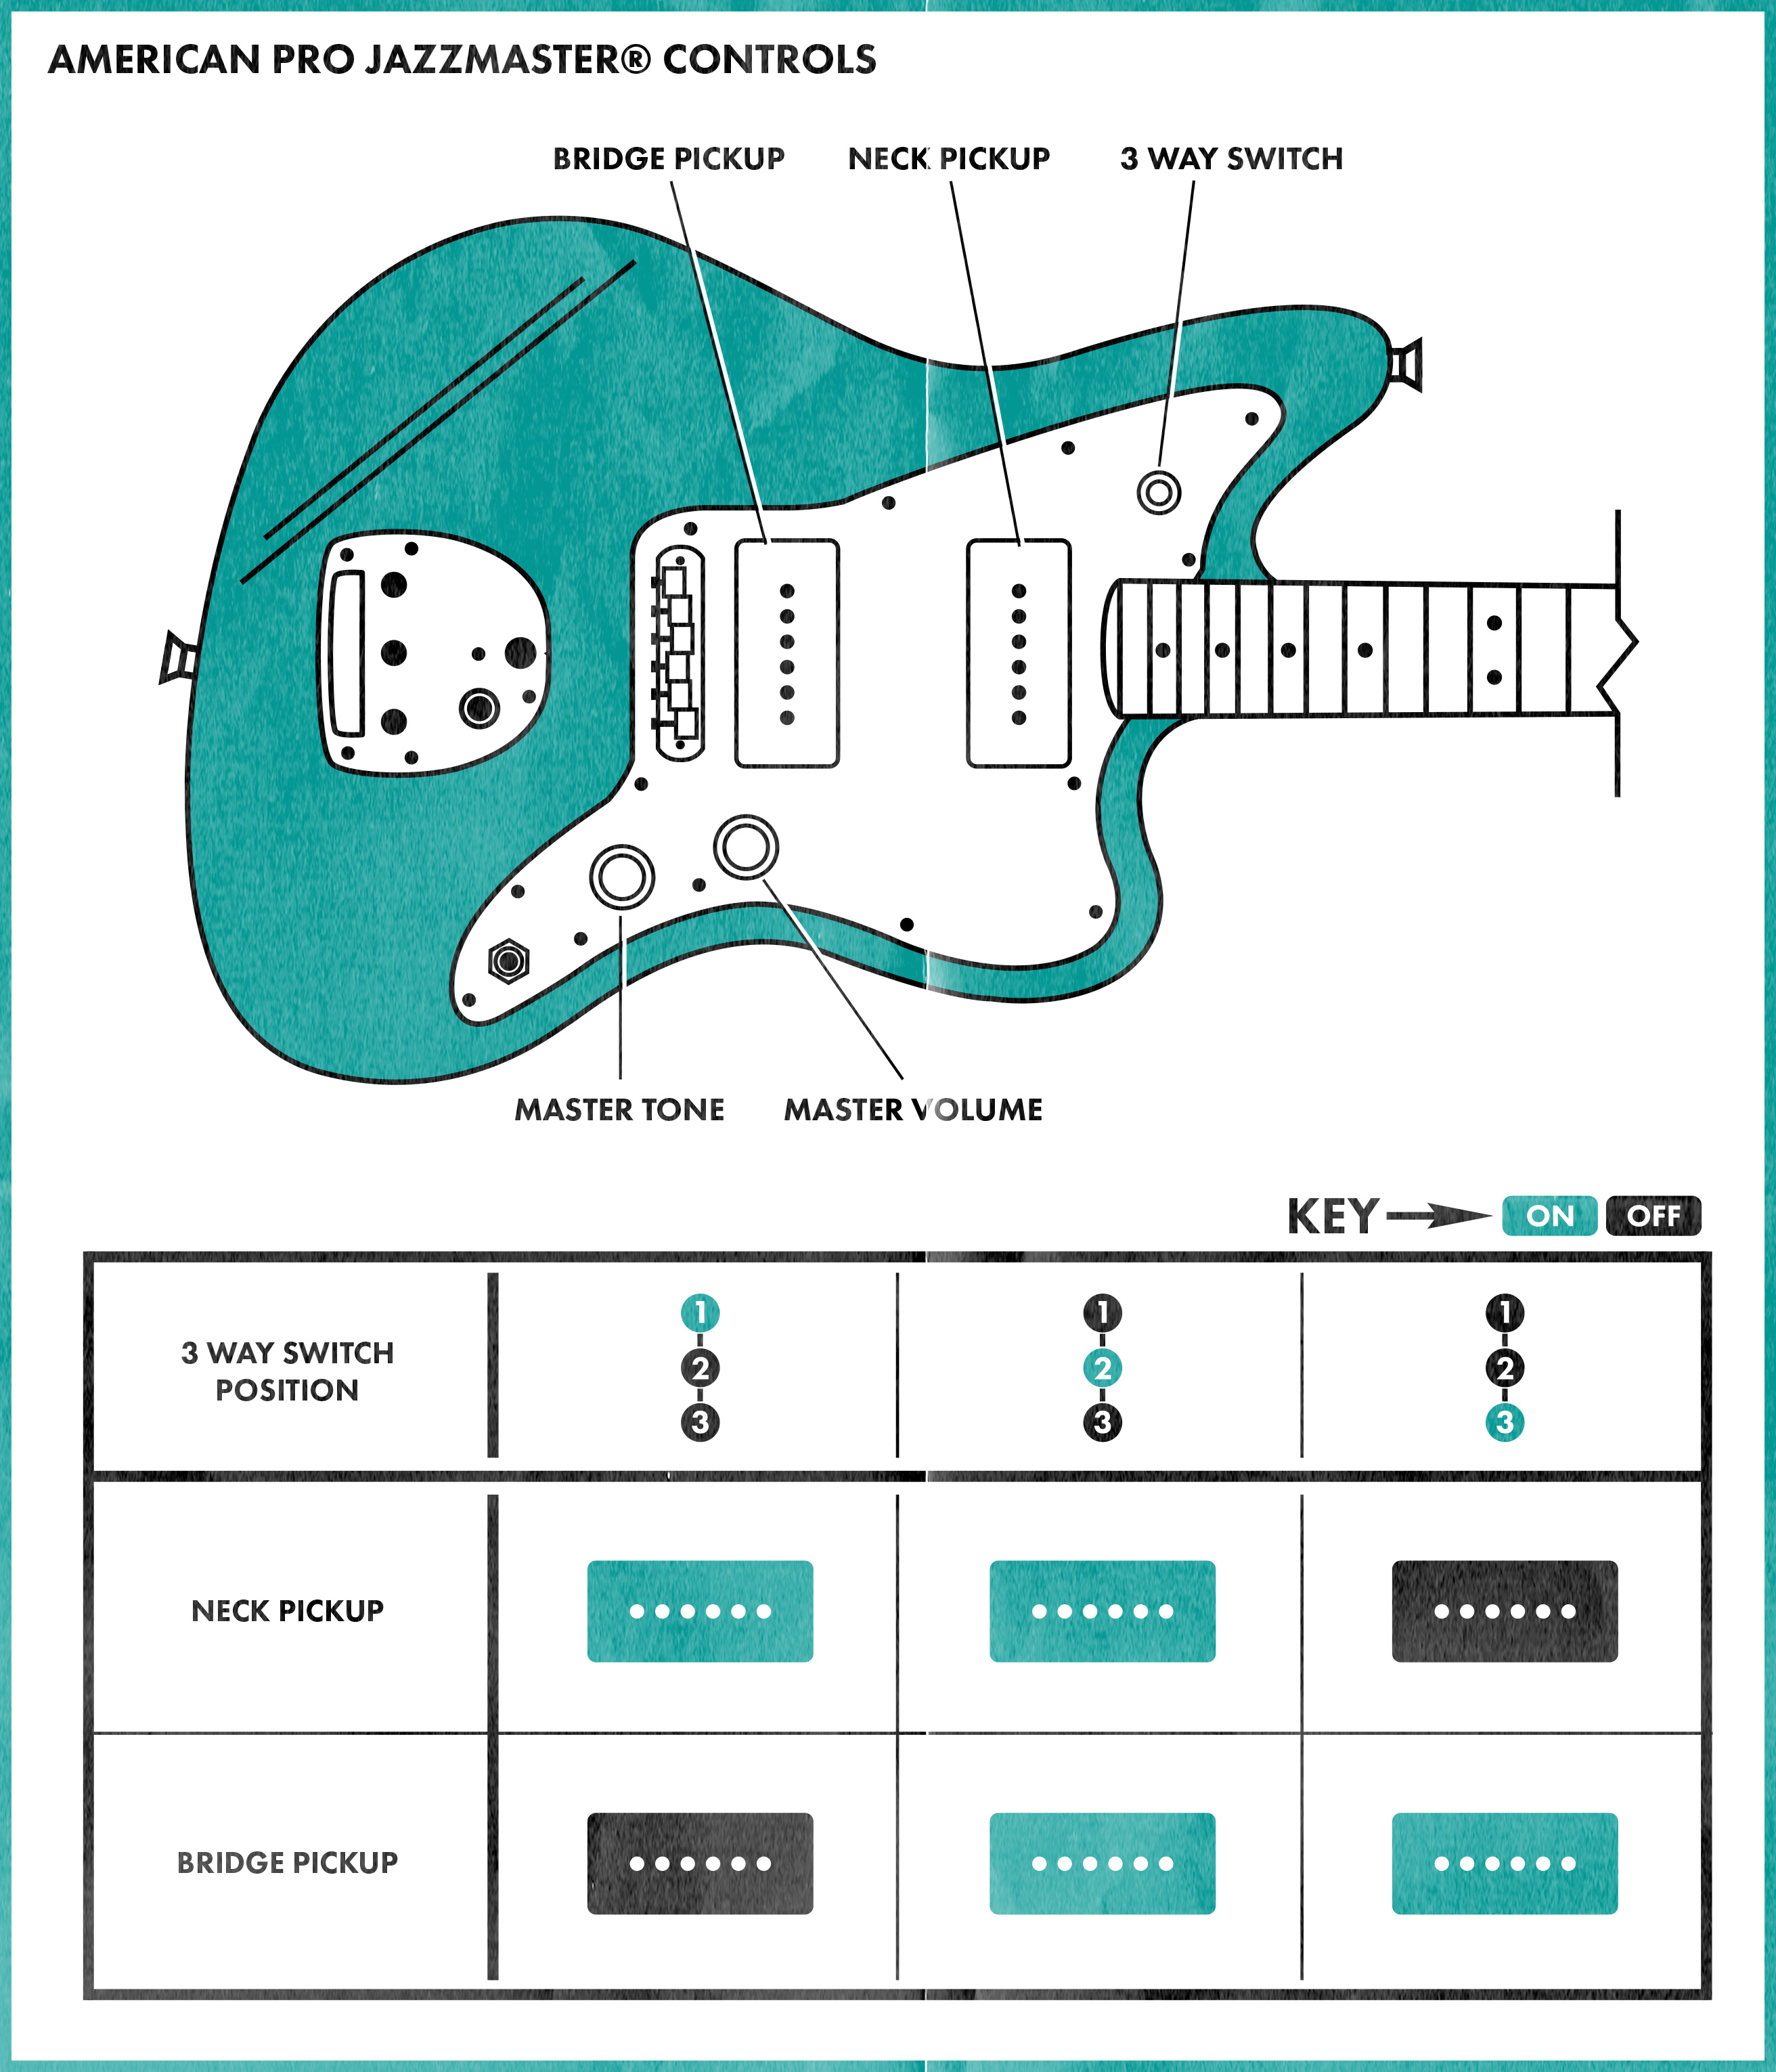 squier stratocaster wiring diagram epiphone nighthawk jazzmaster controls explained fender